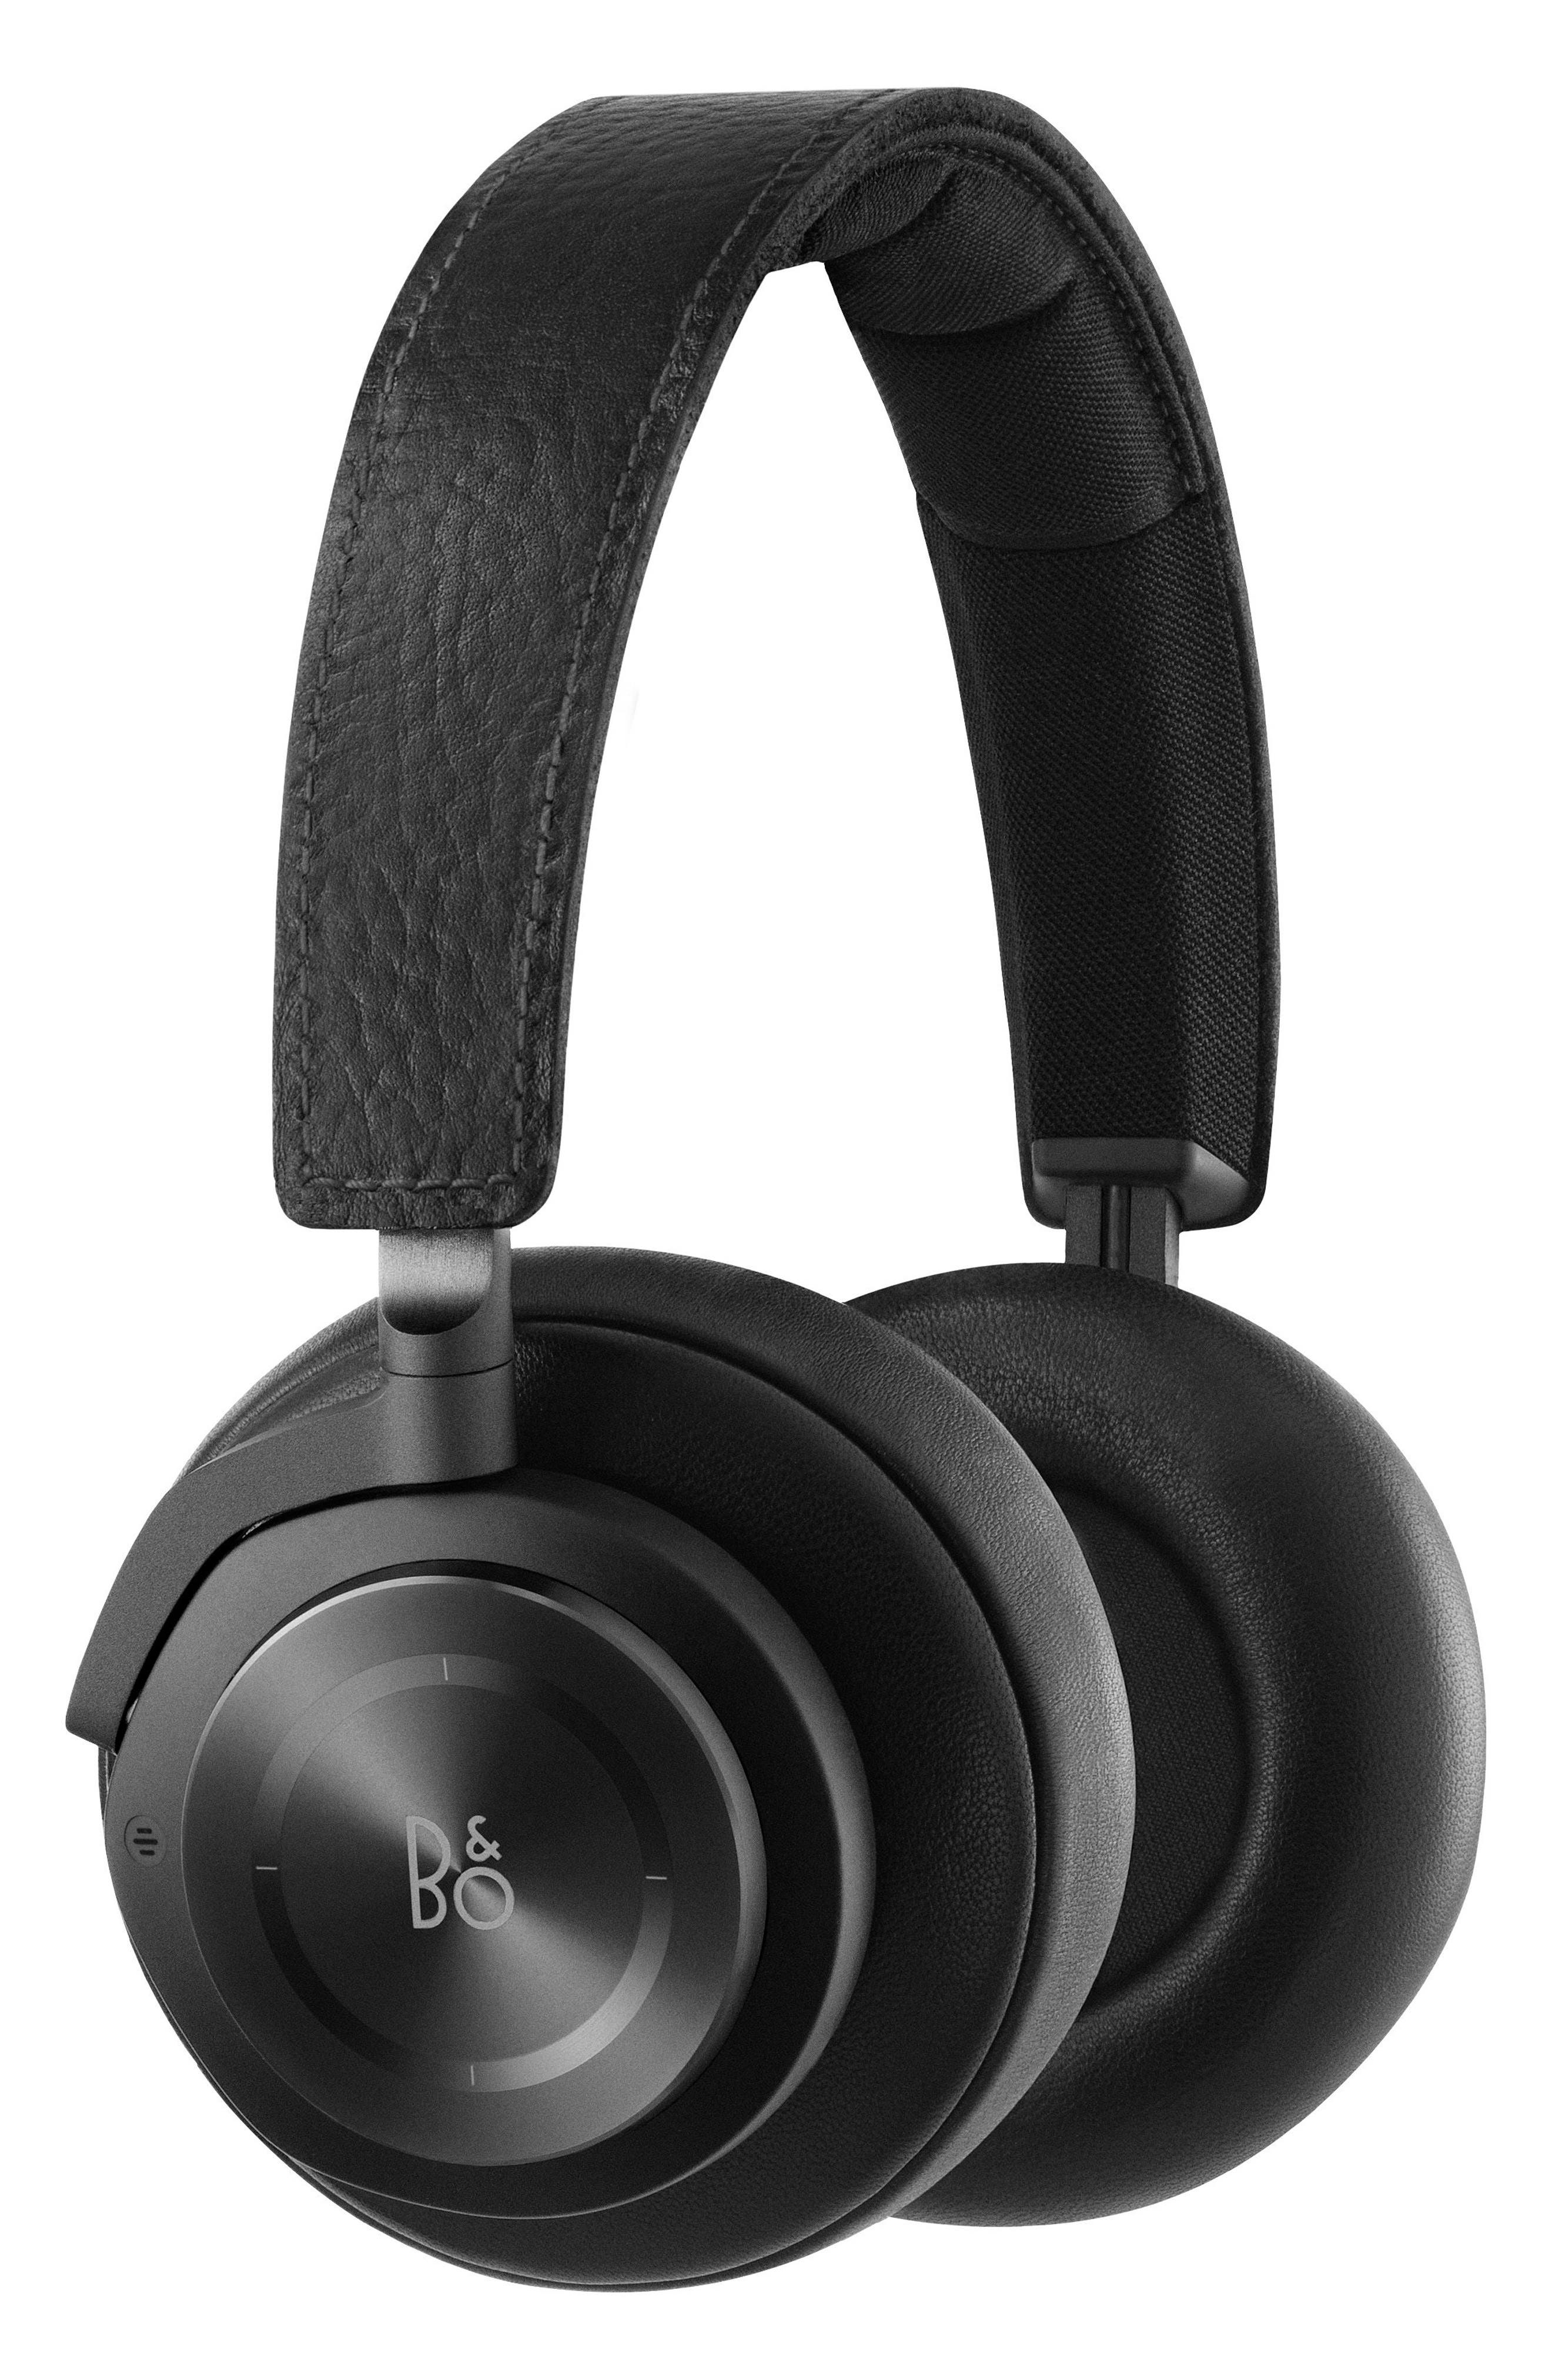 H9 Wireless Noise Canceling on-Ear Headphones,                         Main,                         color, Black